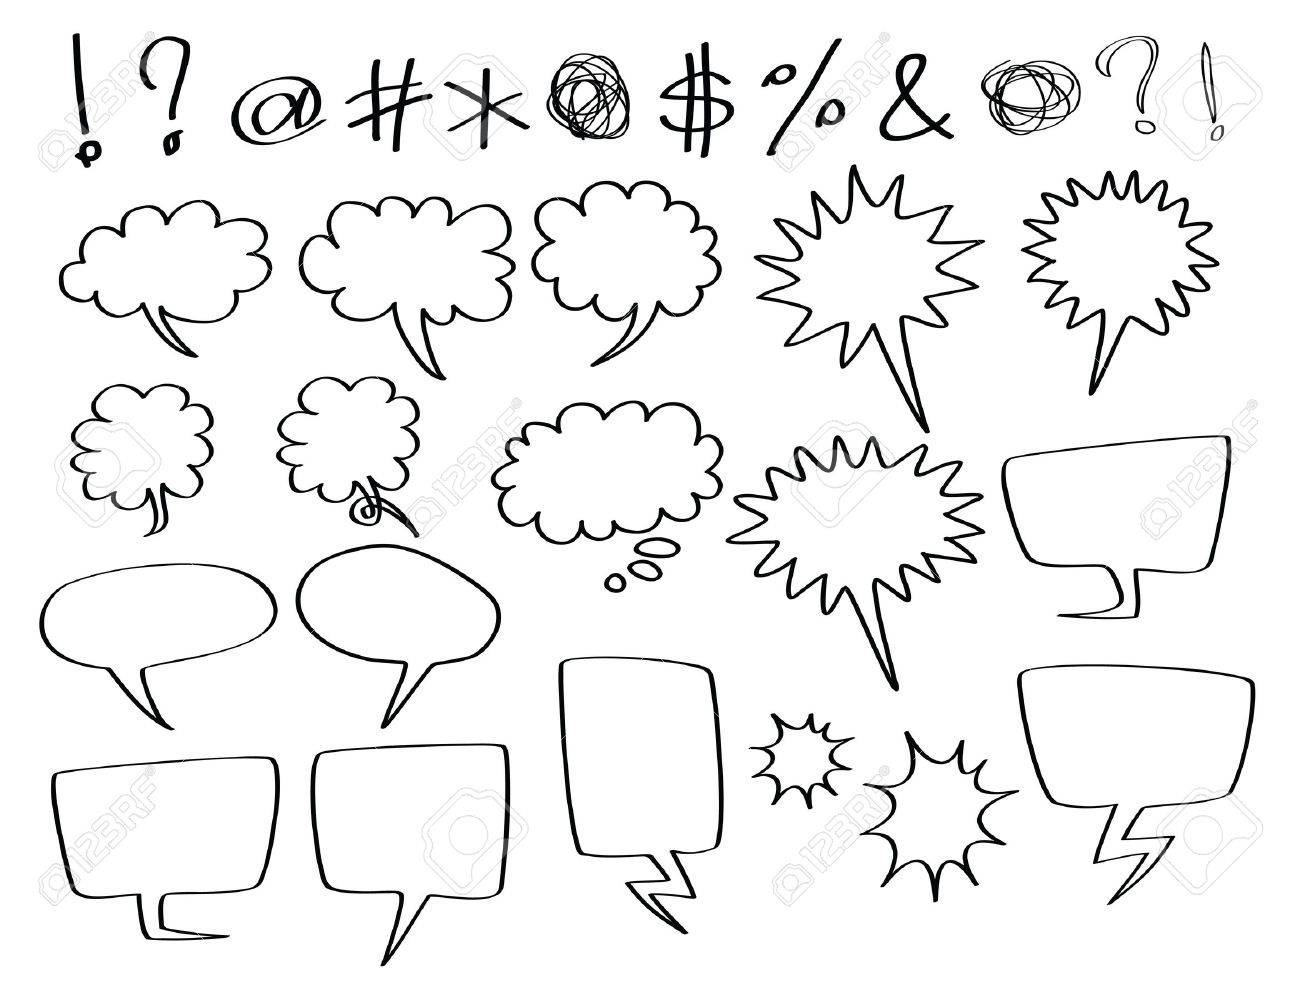 hand-drawn speech and thought bubbles, in comic style. Stock Photo - 8957431